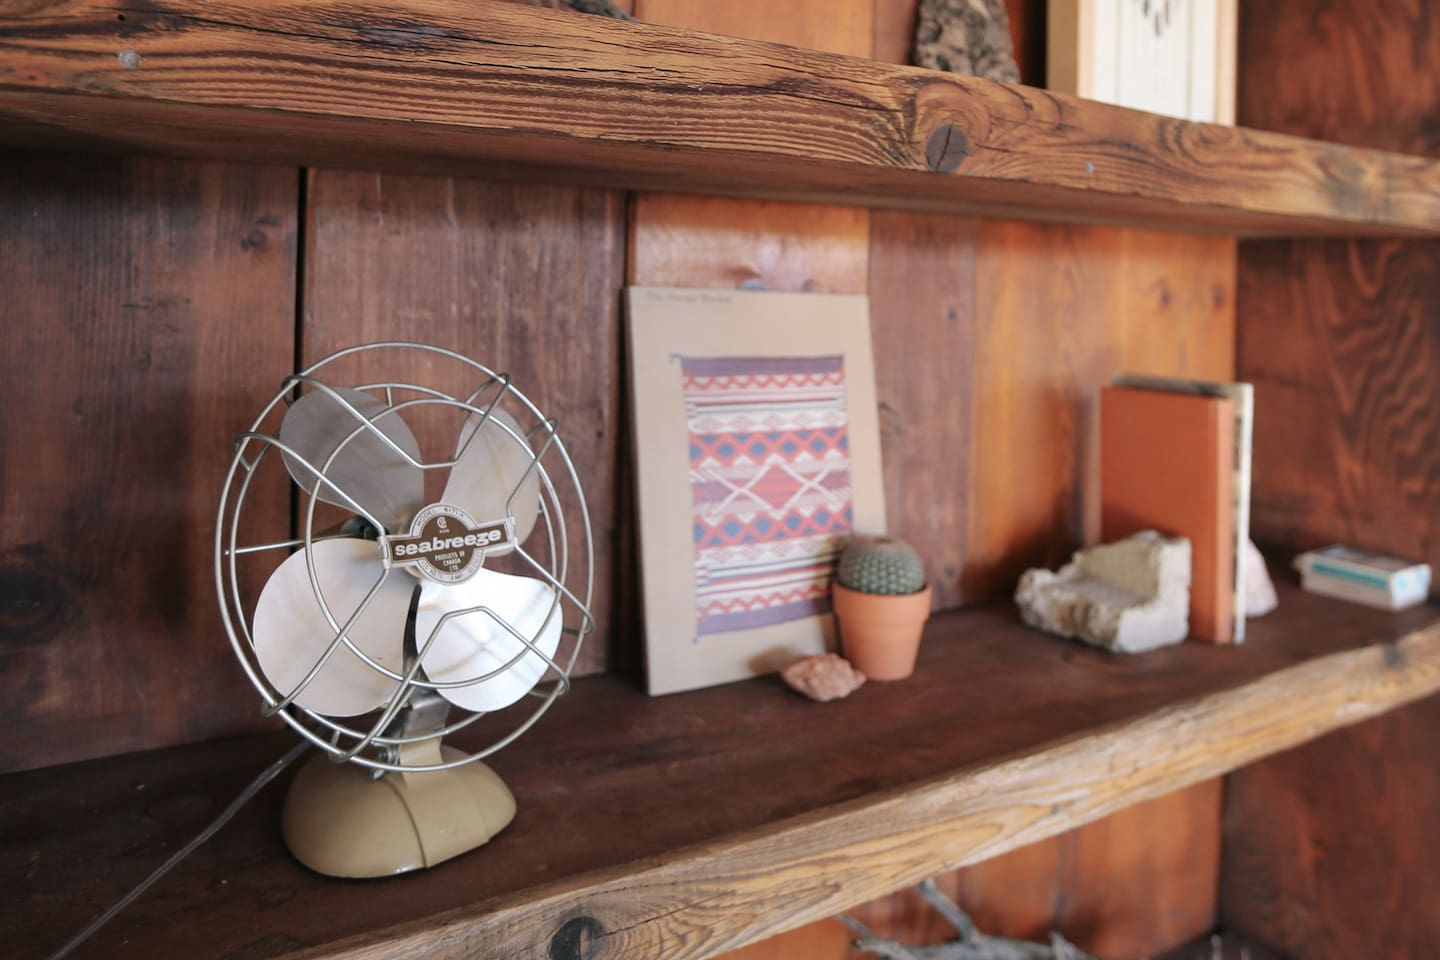 Decor in the Tent Room (a detached bedroom)